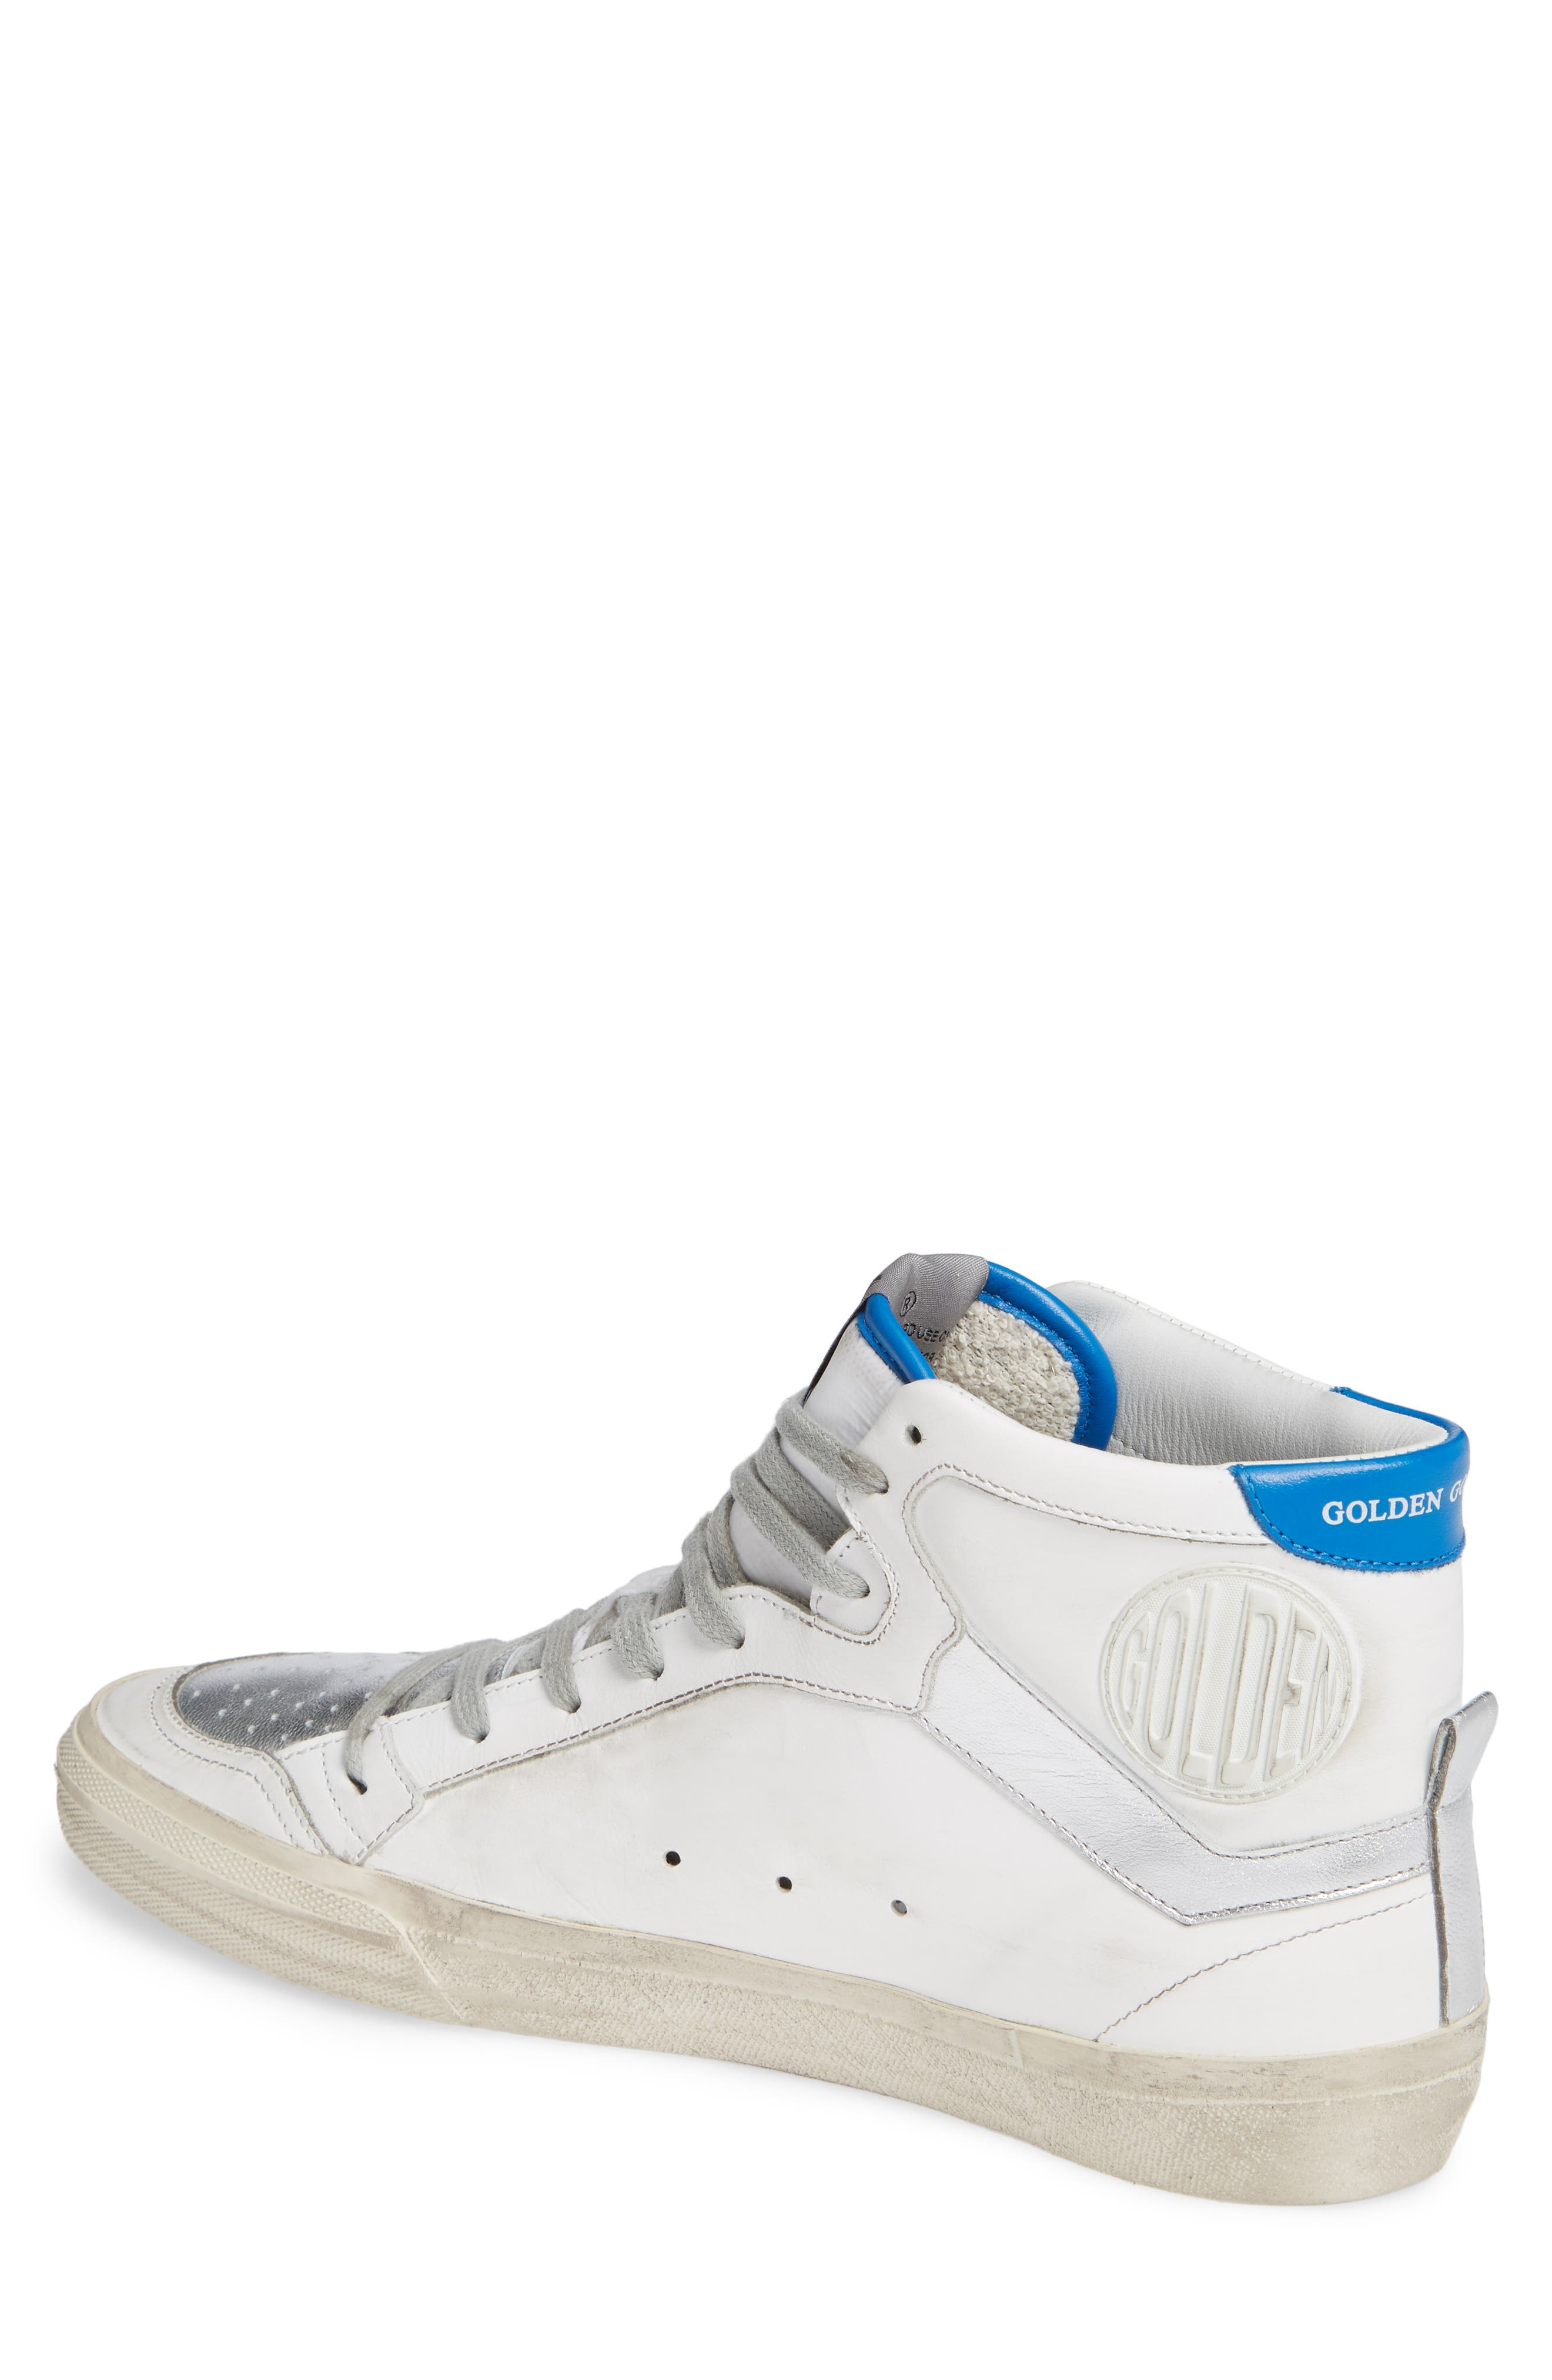 2.12 Star High Top Sneaker,                             Alternate thumbnail 2, color,                             WHITE LEATHER- RED STAR